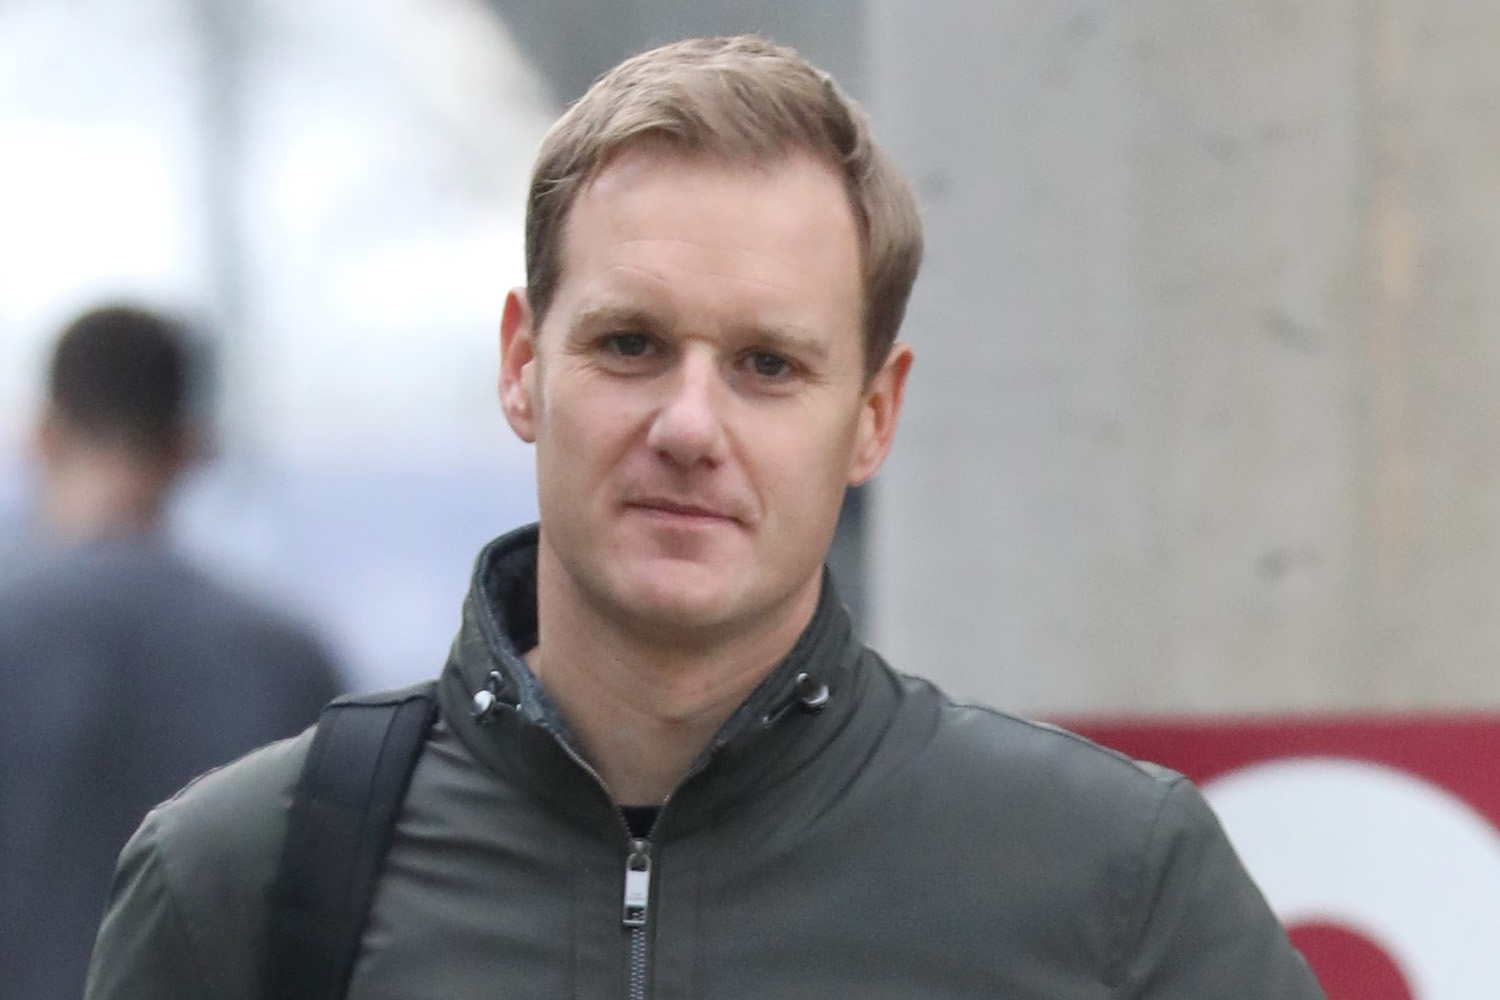 Dan Walker slams 'grim' insults and threats he's received after BBC Breakfast interviews